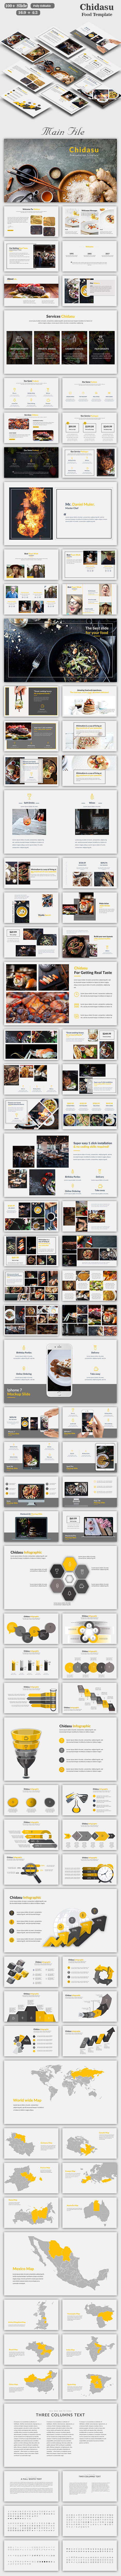 Chidasu Food PowerPoint Template - Creative PowerPoint Templates